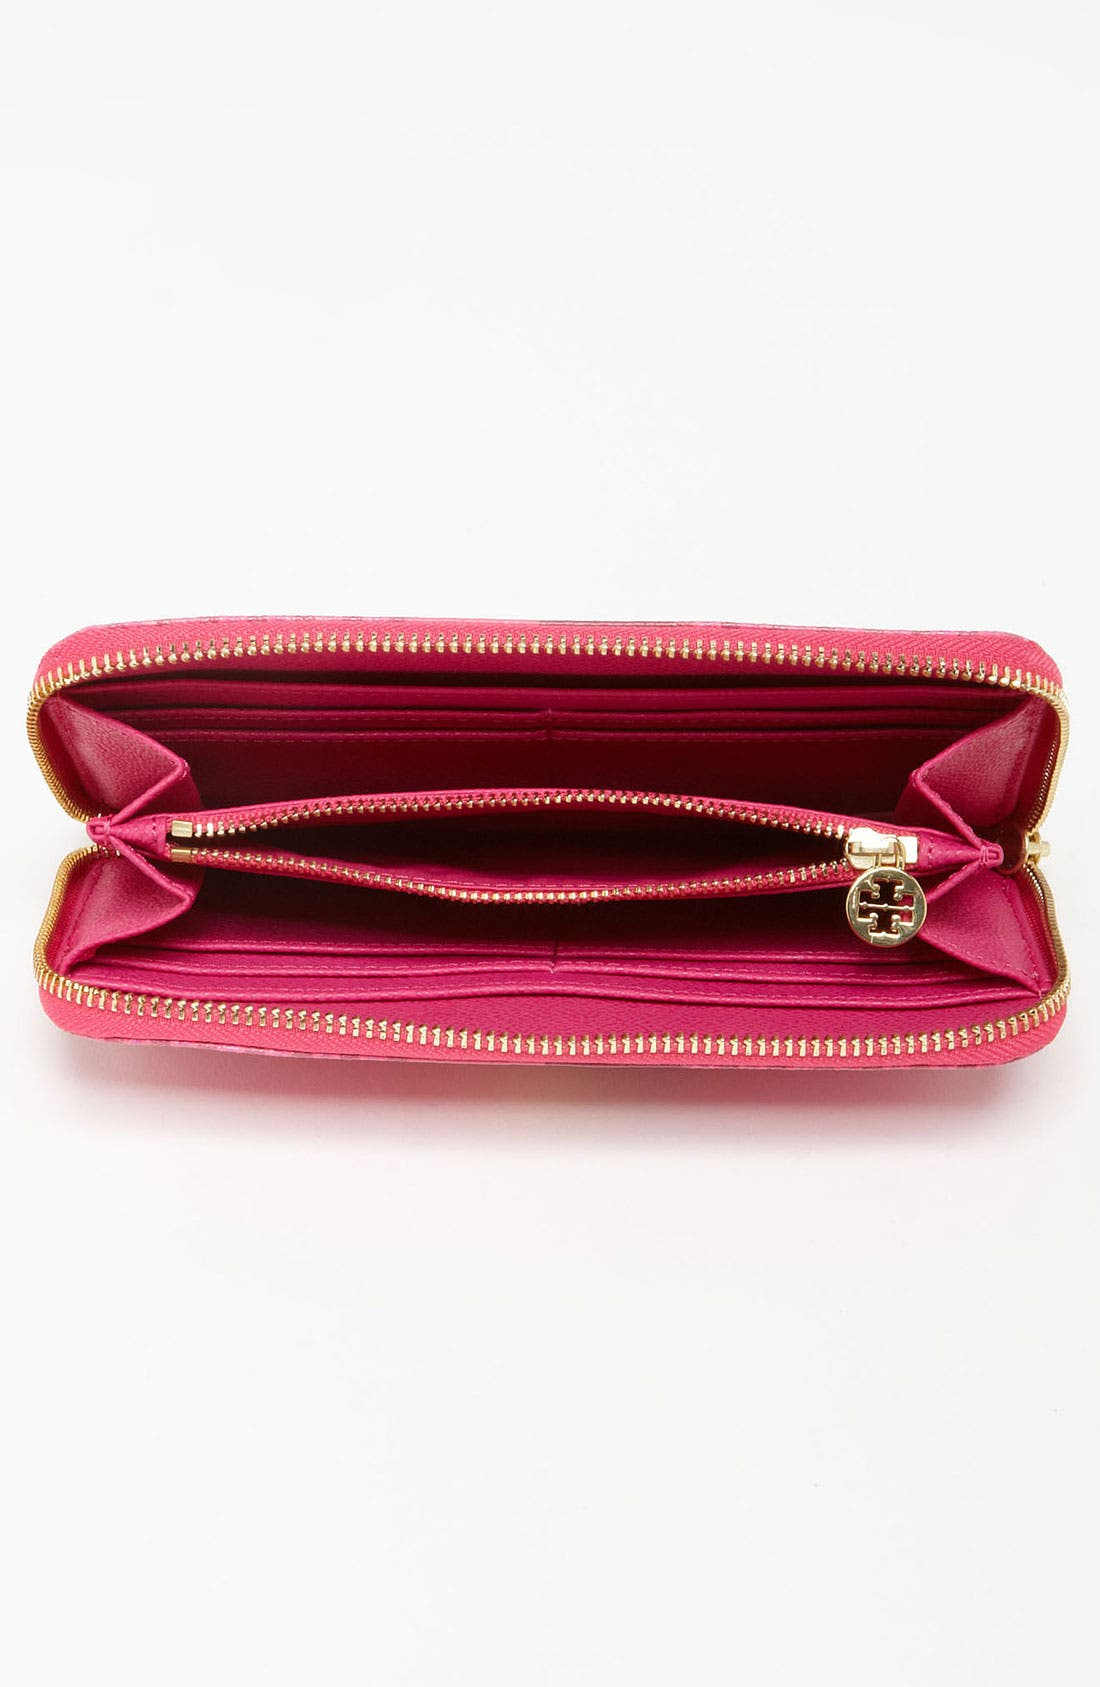 Alternate Image 3  - Tory Burch 'Roslyn' Continental Zip Wallet